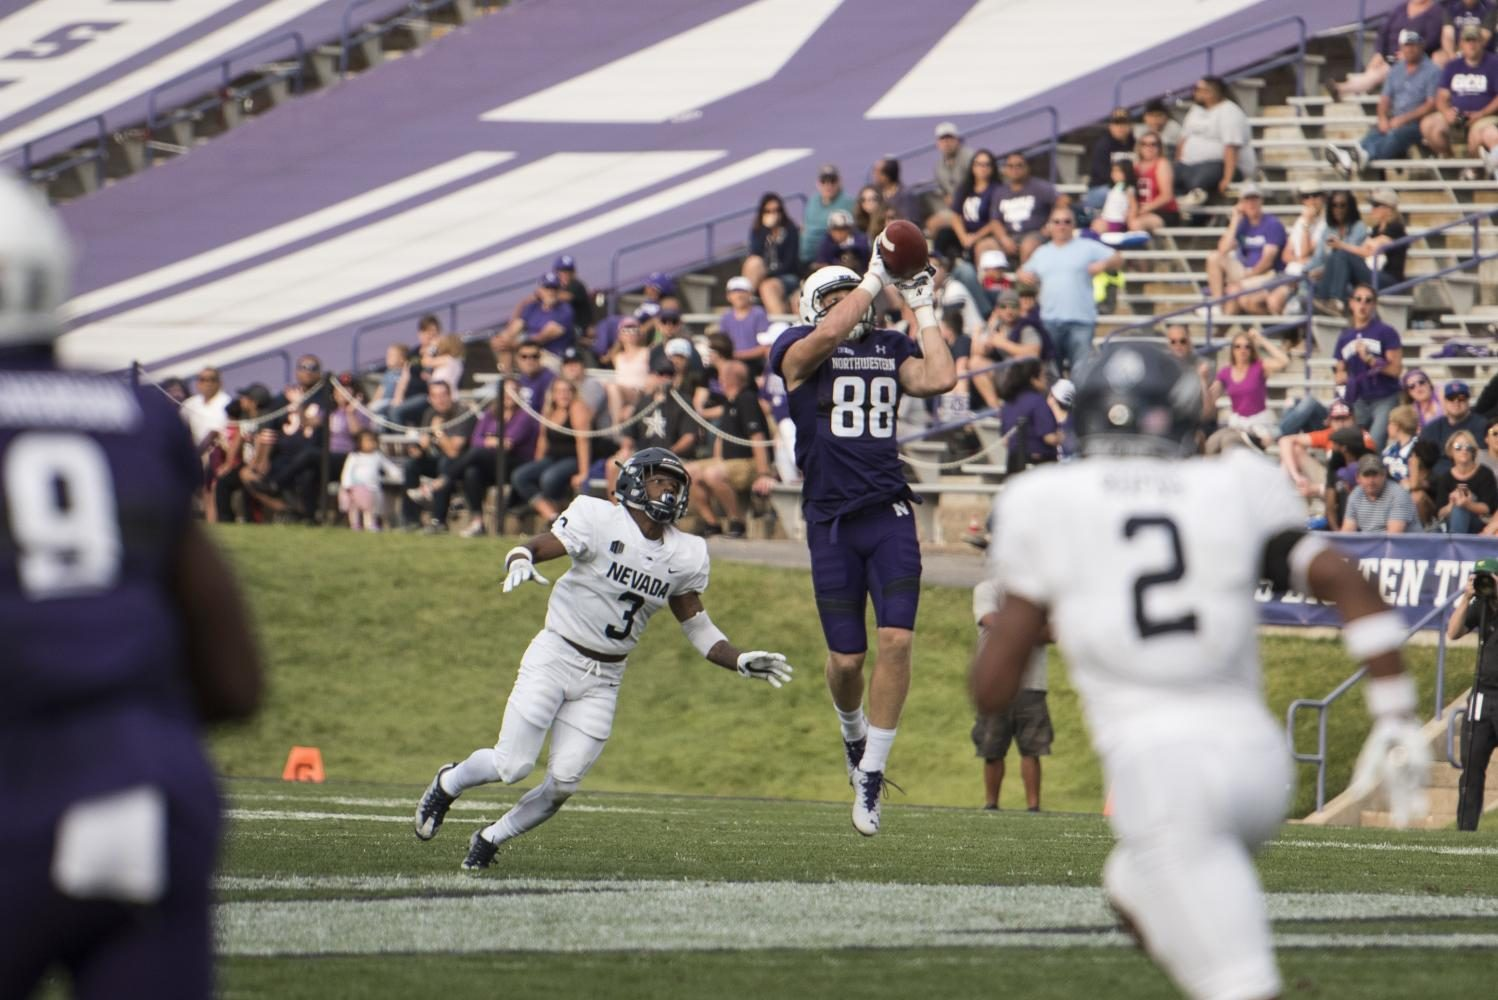 Ben+Skowronek+receives+a+pass.+The+sophomore+finished+with+eight+catches+against+Nevada.+